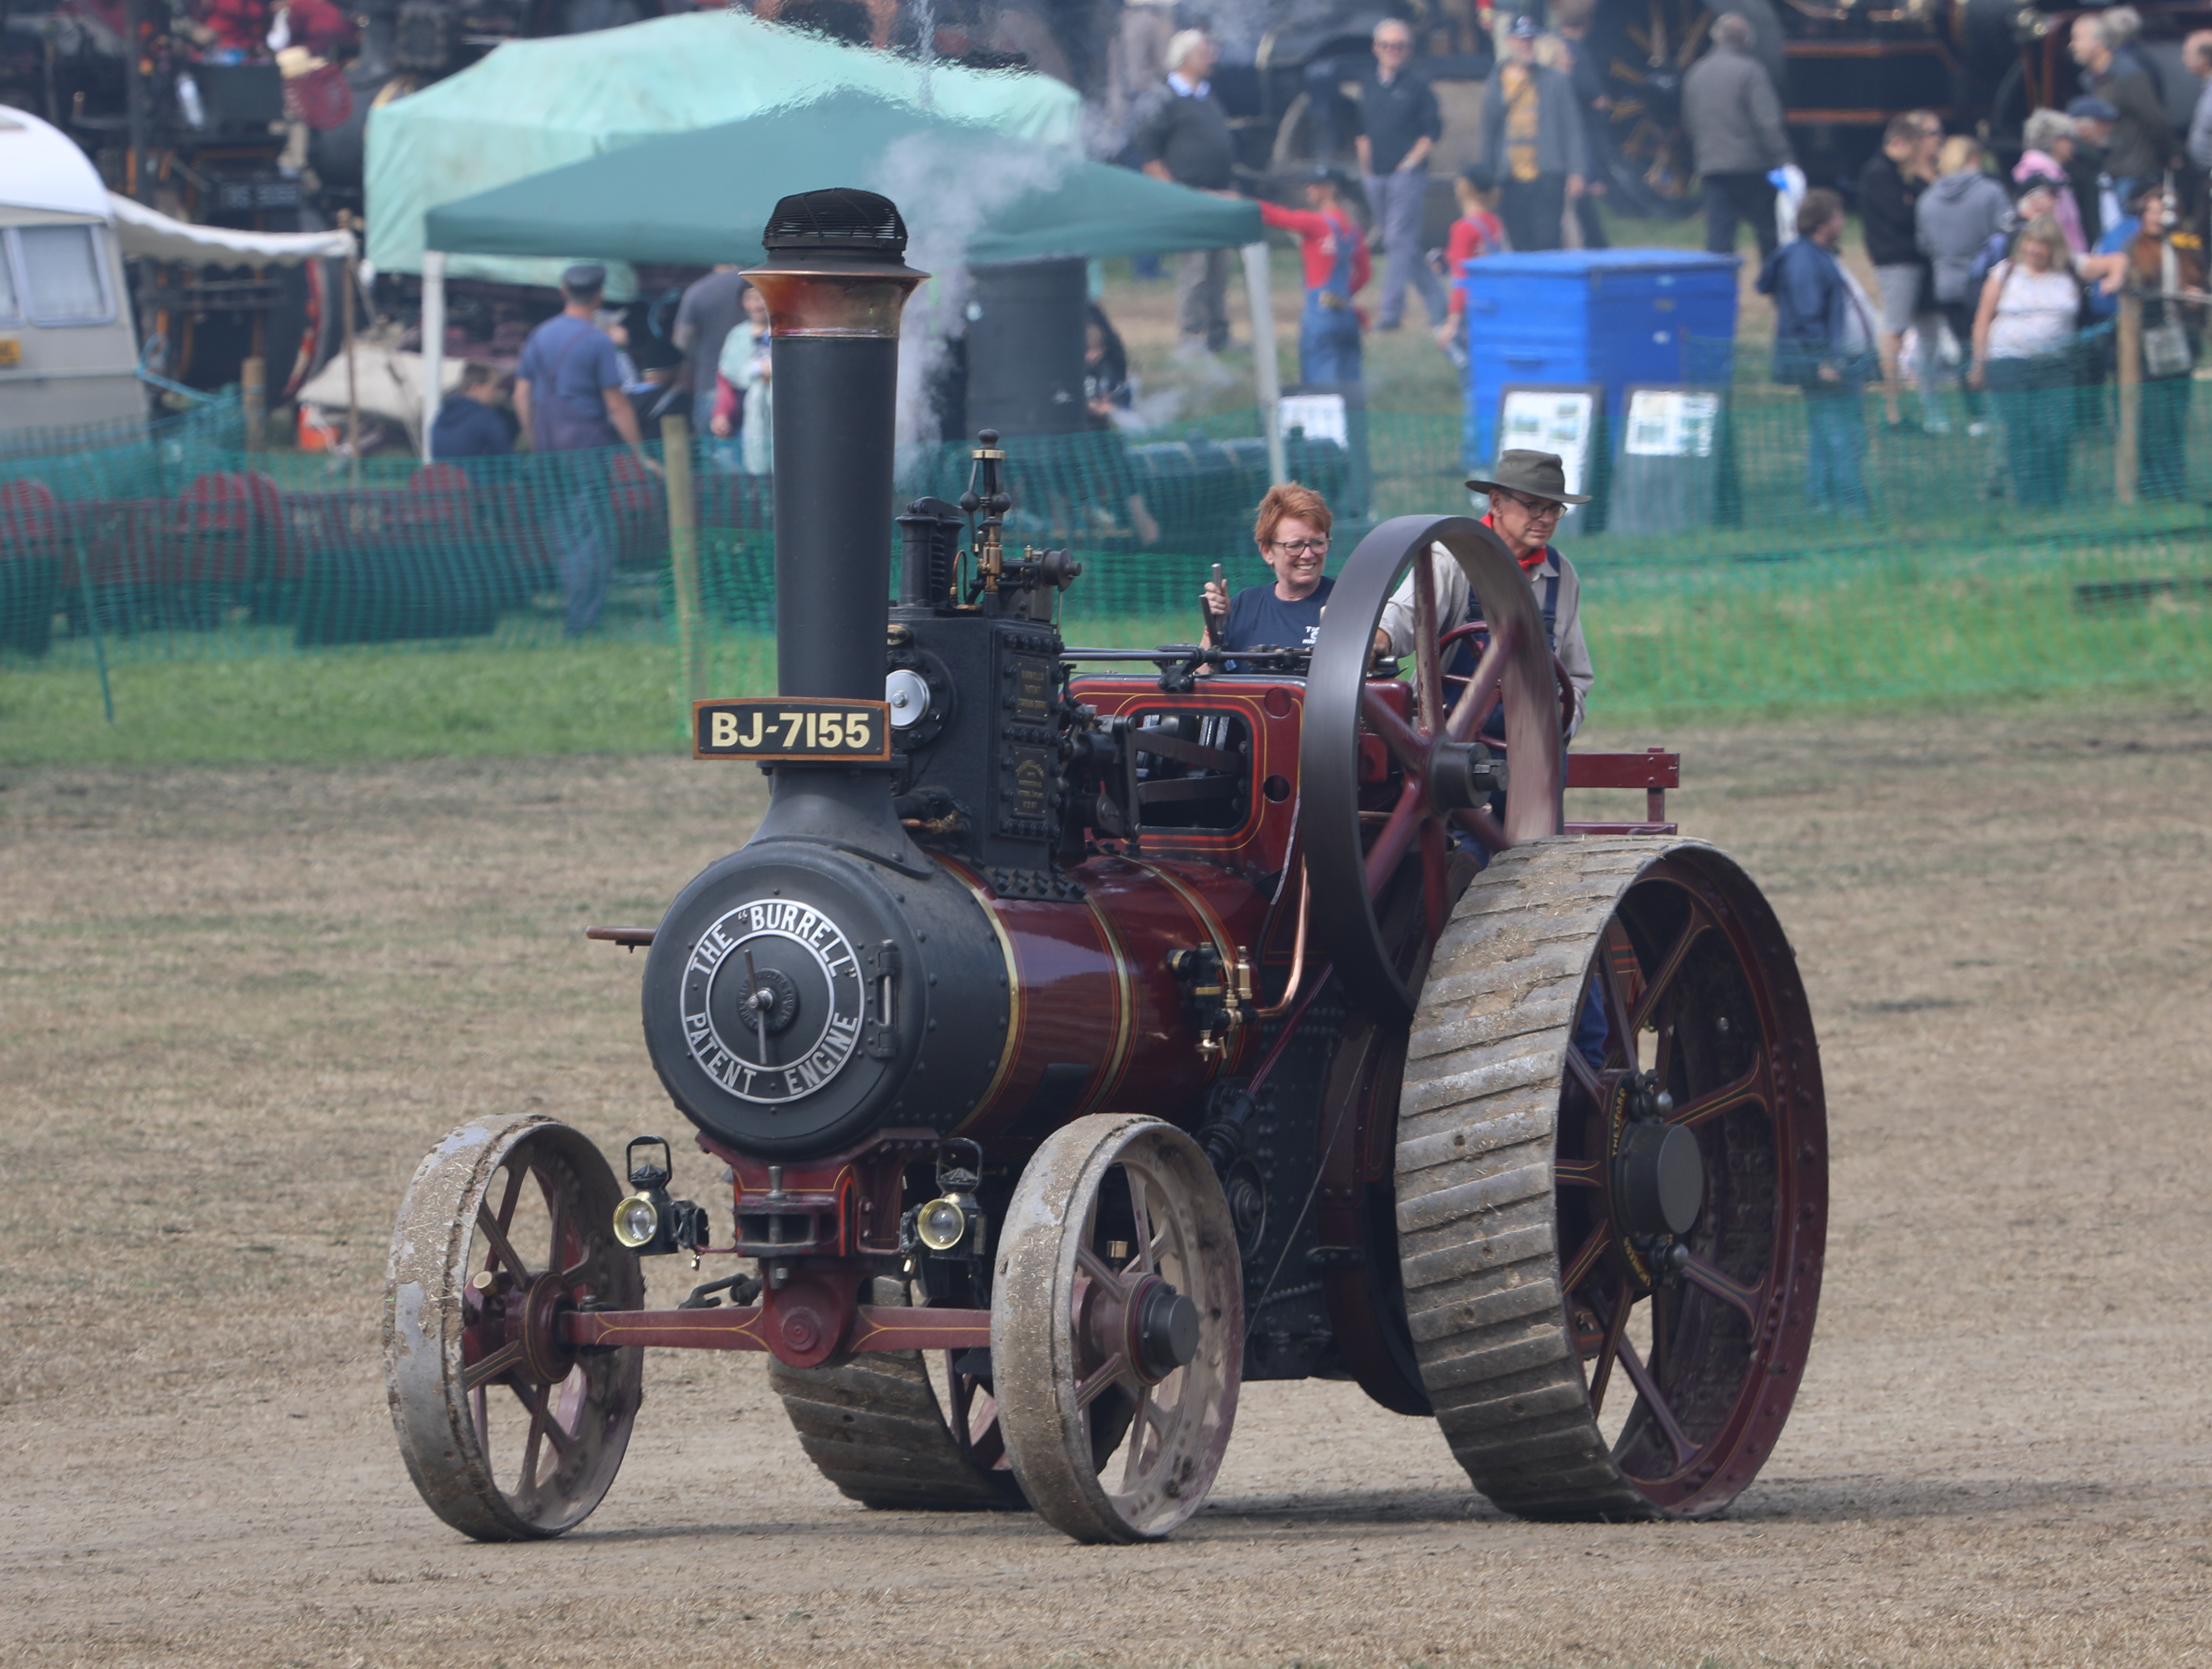 traction engine wikipediaHow Steam Engine Works Diagram On Car Engine Labeled Diagram Of Basic #8